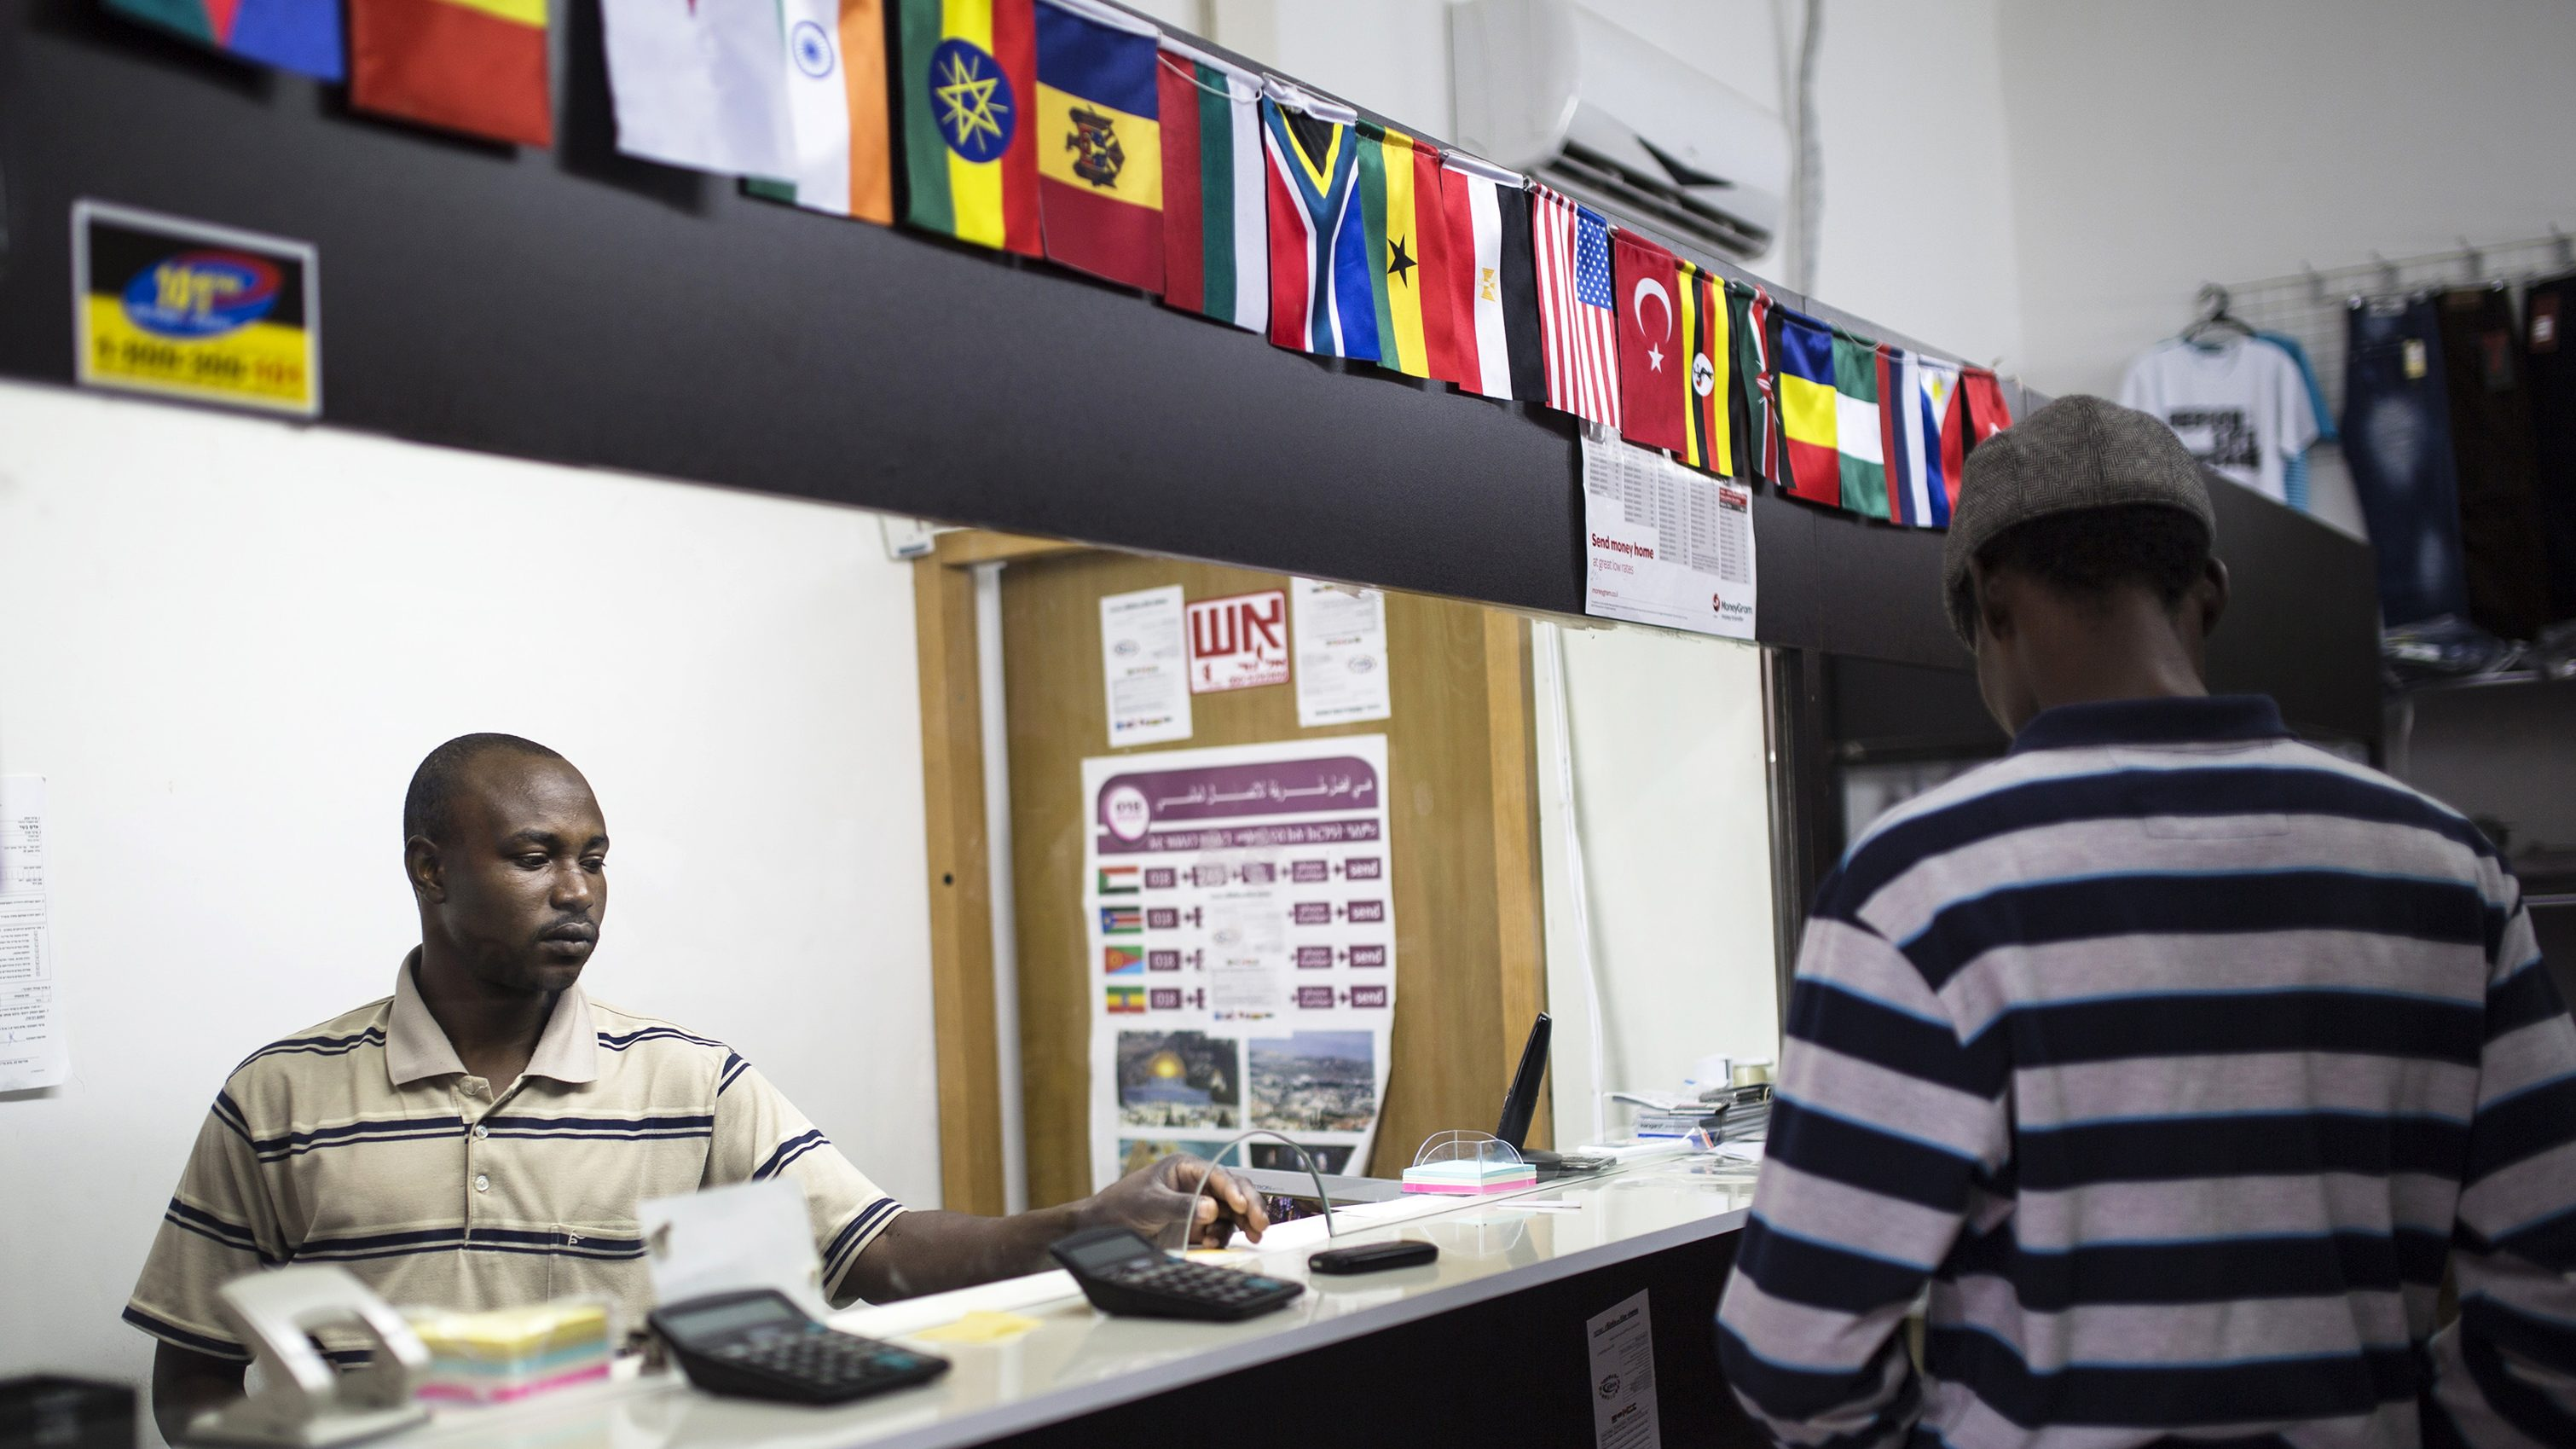 qz.com - Alexander Onukwue - A South Africa-Nigeria fintech deal suggests agent banking can boost trade within Africa